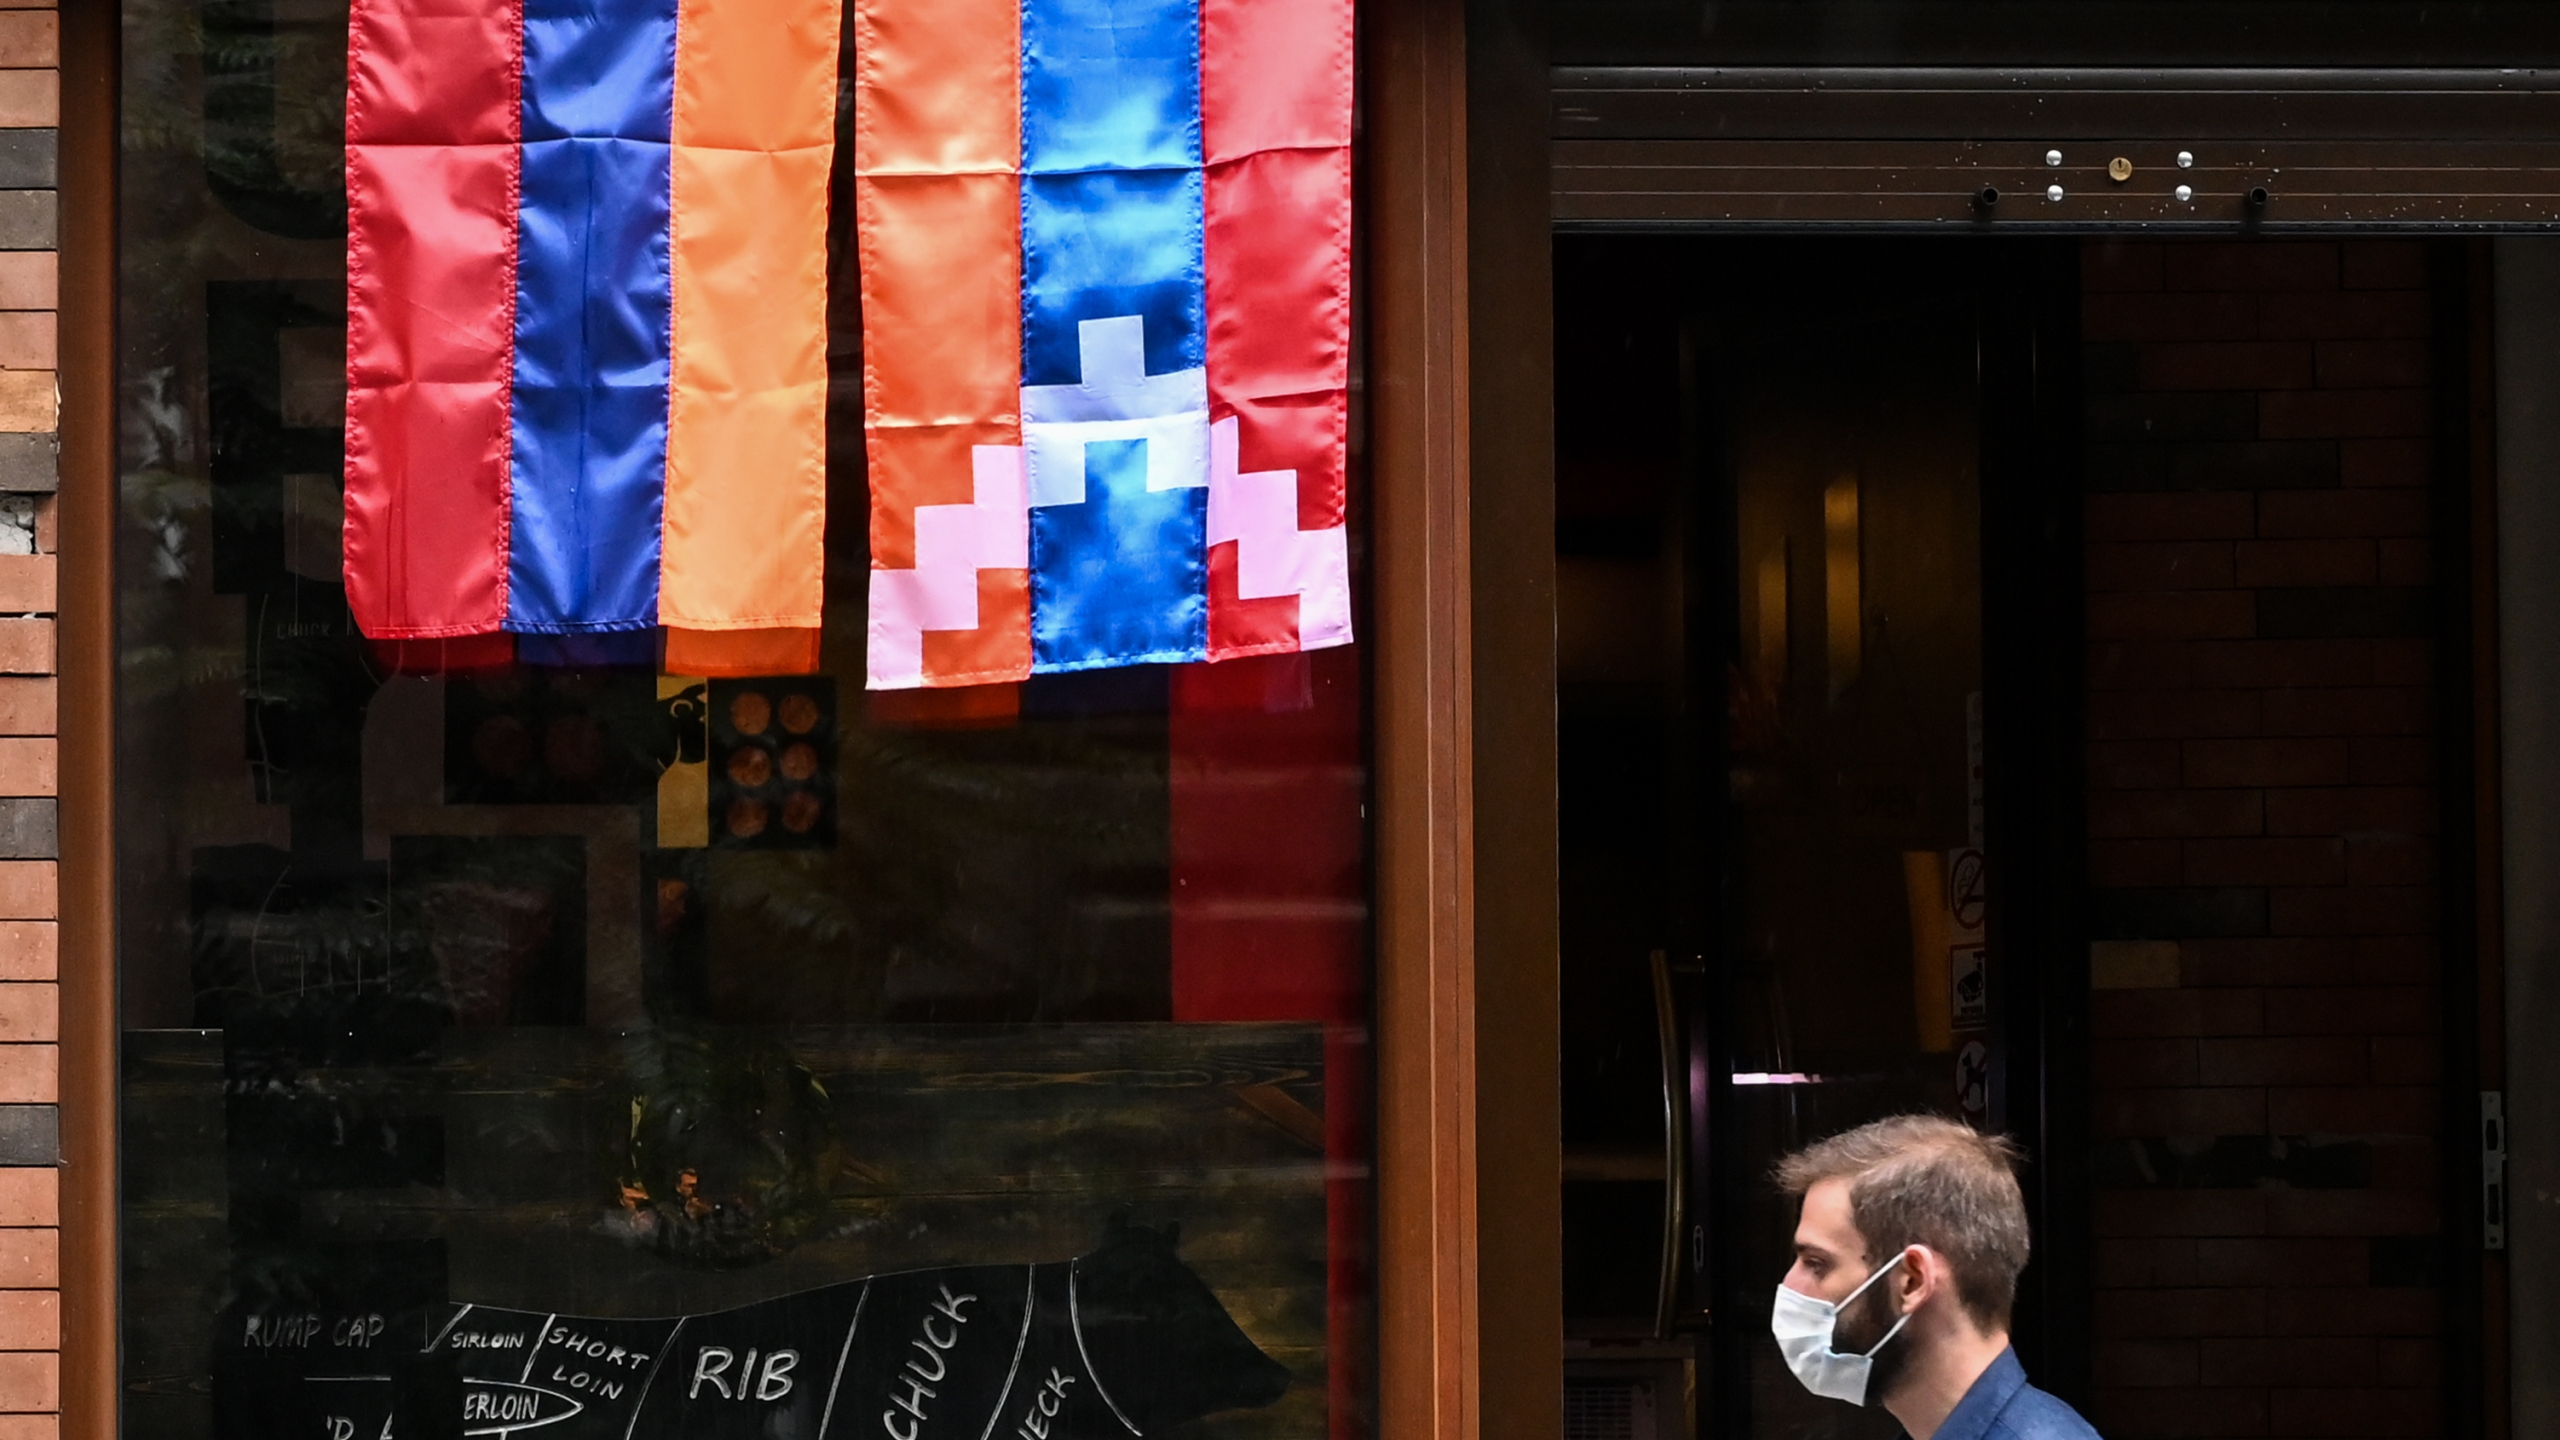 A man walks past a shop decorated with flags of Armenia and the breakaway Nagorno-Karabakh region in Yerevan, Armenia's capital, on Oct. 6, 2020. (AFP via Getty Images)